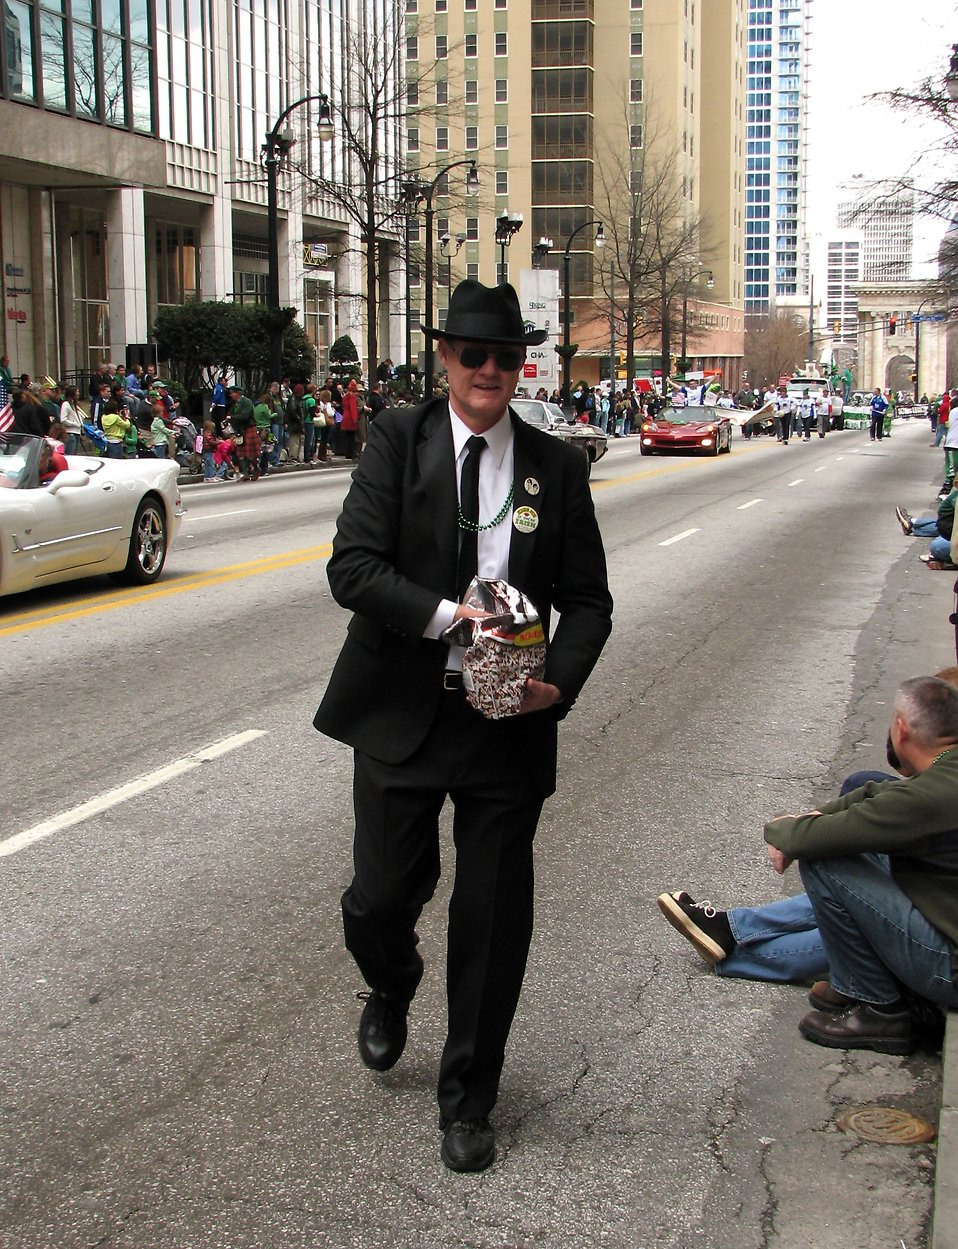 A man passing out candy at the 2010 Atlanta Saint Patrick's Day Parade : Free Stock Photo